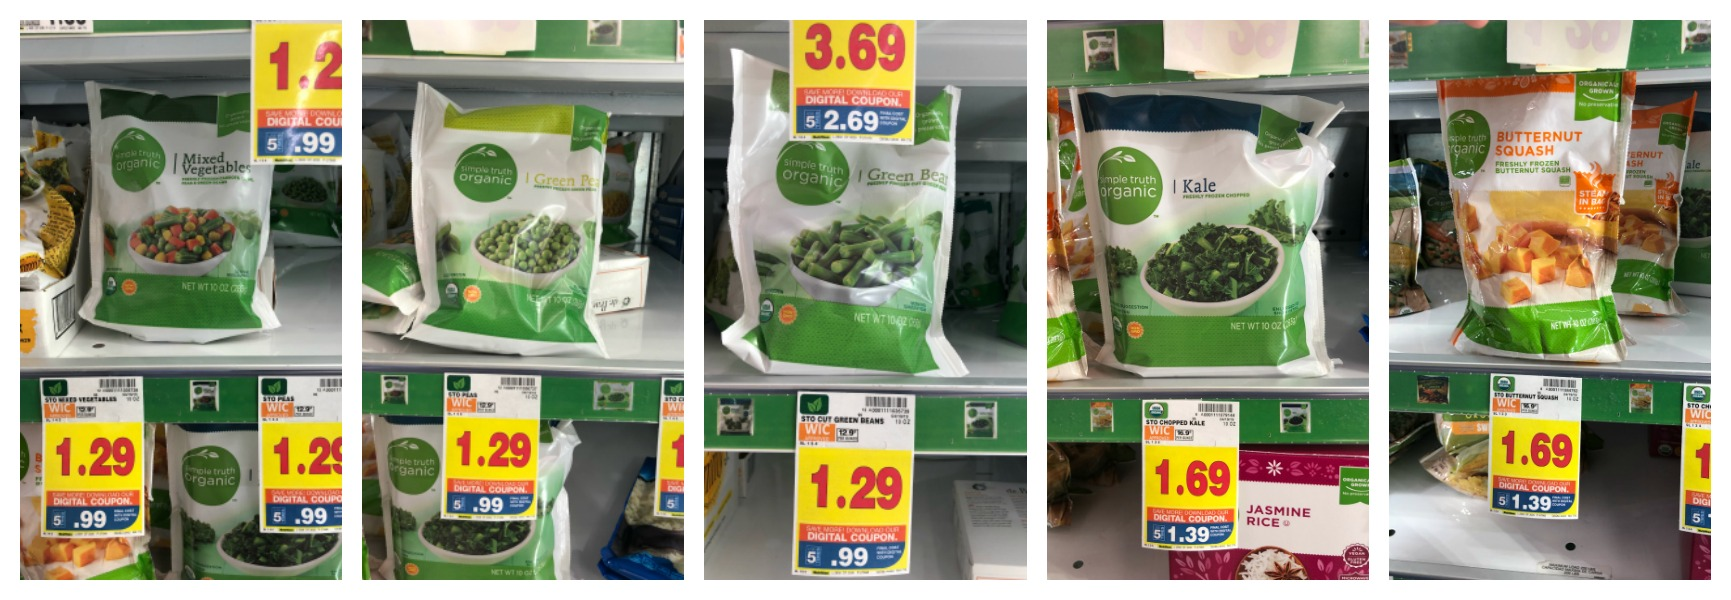 Stock Up On Simple Truth Organic Frozen Vegetables For As